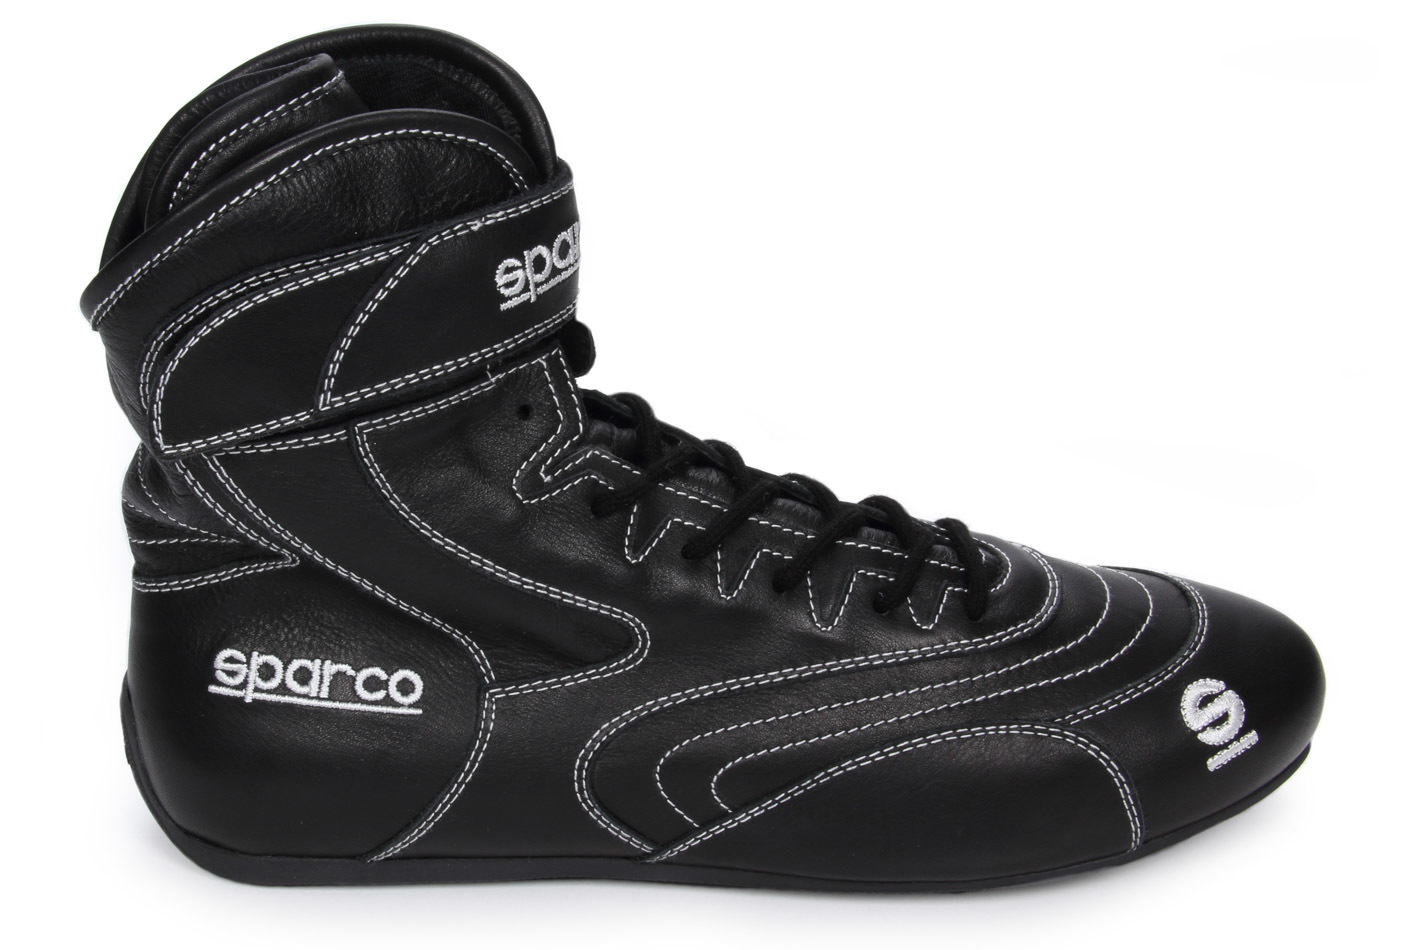 Sparco 00127346NR Shoe, SFI 20 Drag, Driving, High-Top, SFI 20, Leather Outer, Fire Retardant Inner, Black, Euro 46, Pair